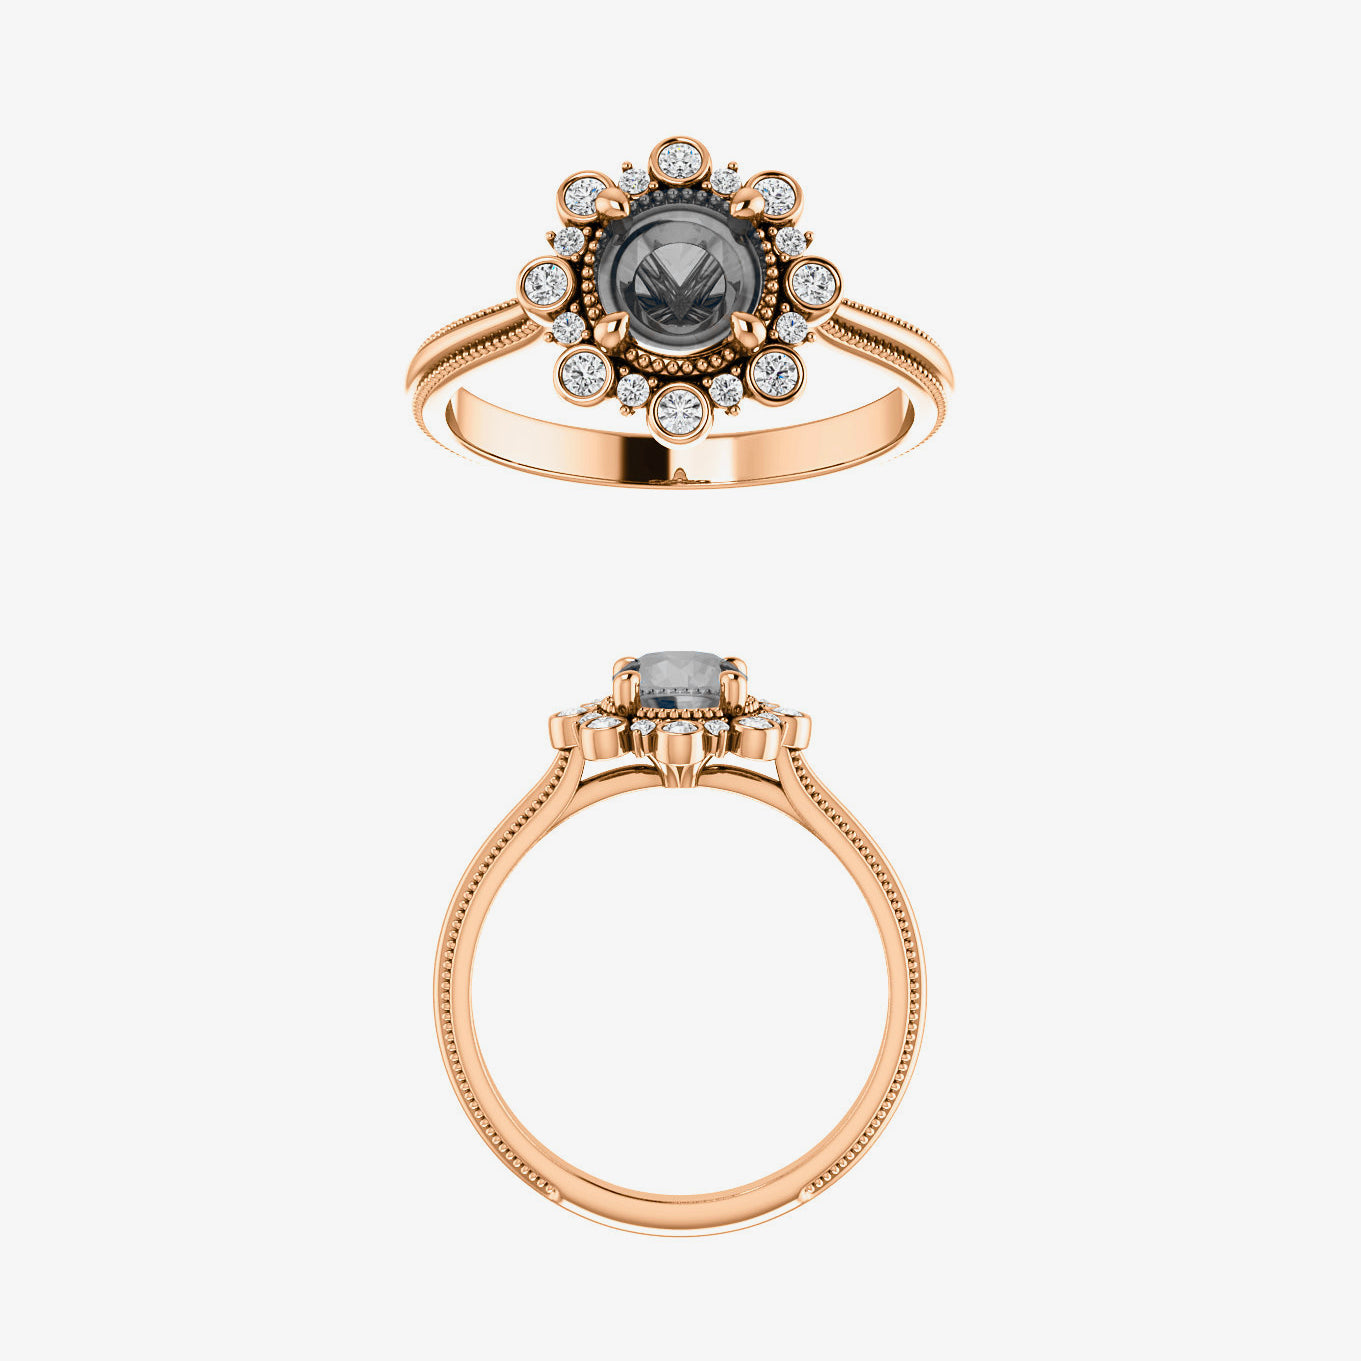 Presley Setting - Midwinter Co. Alternative Bridal Rings and Modern Fine Jewelry